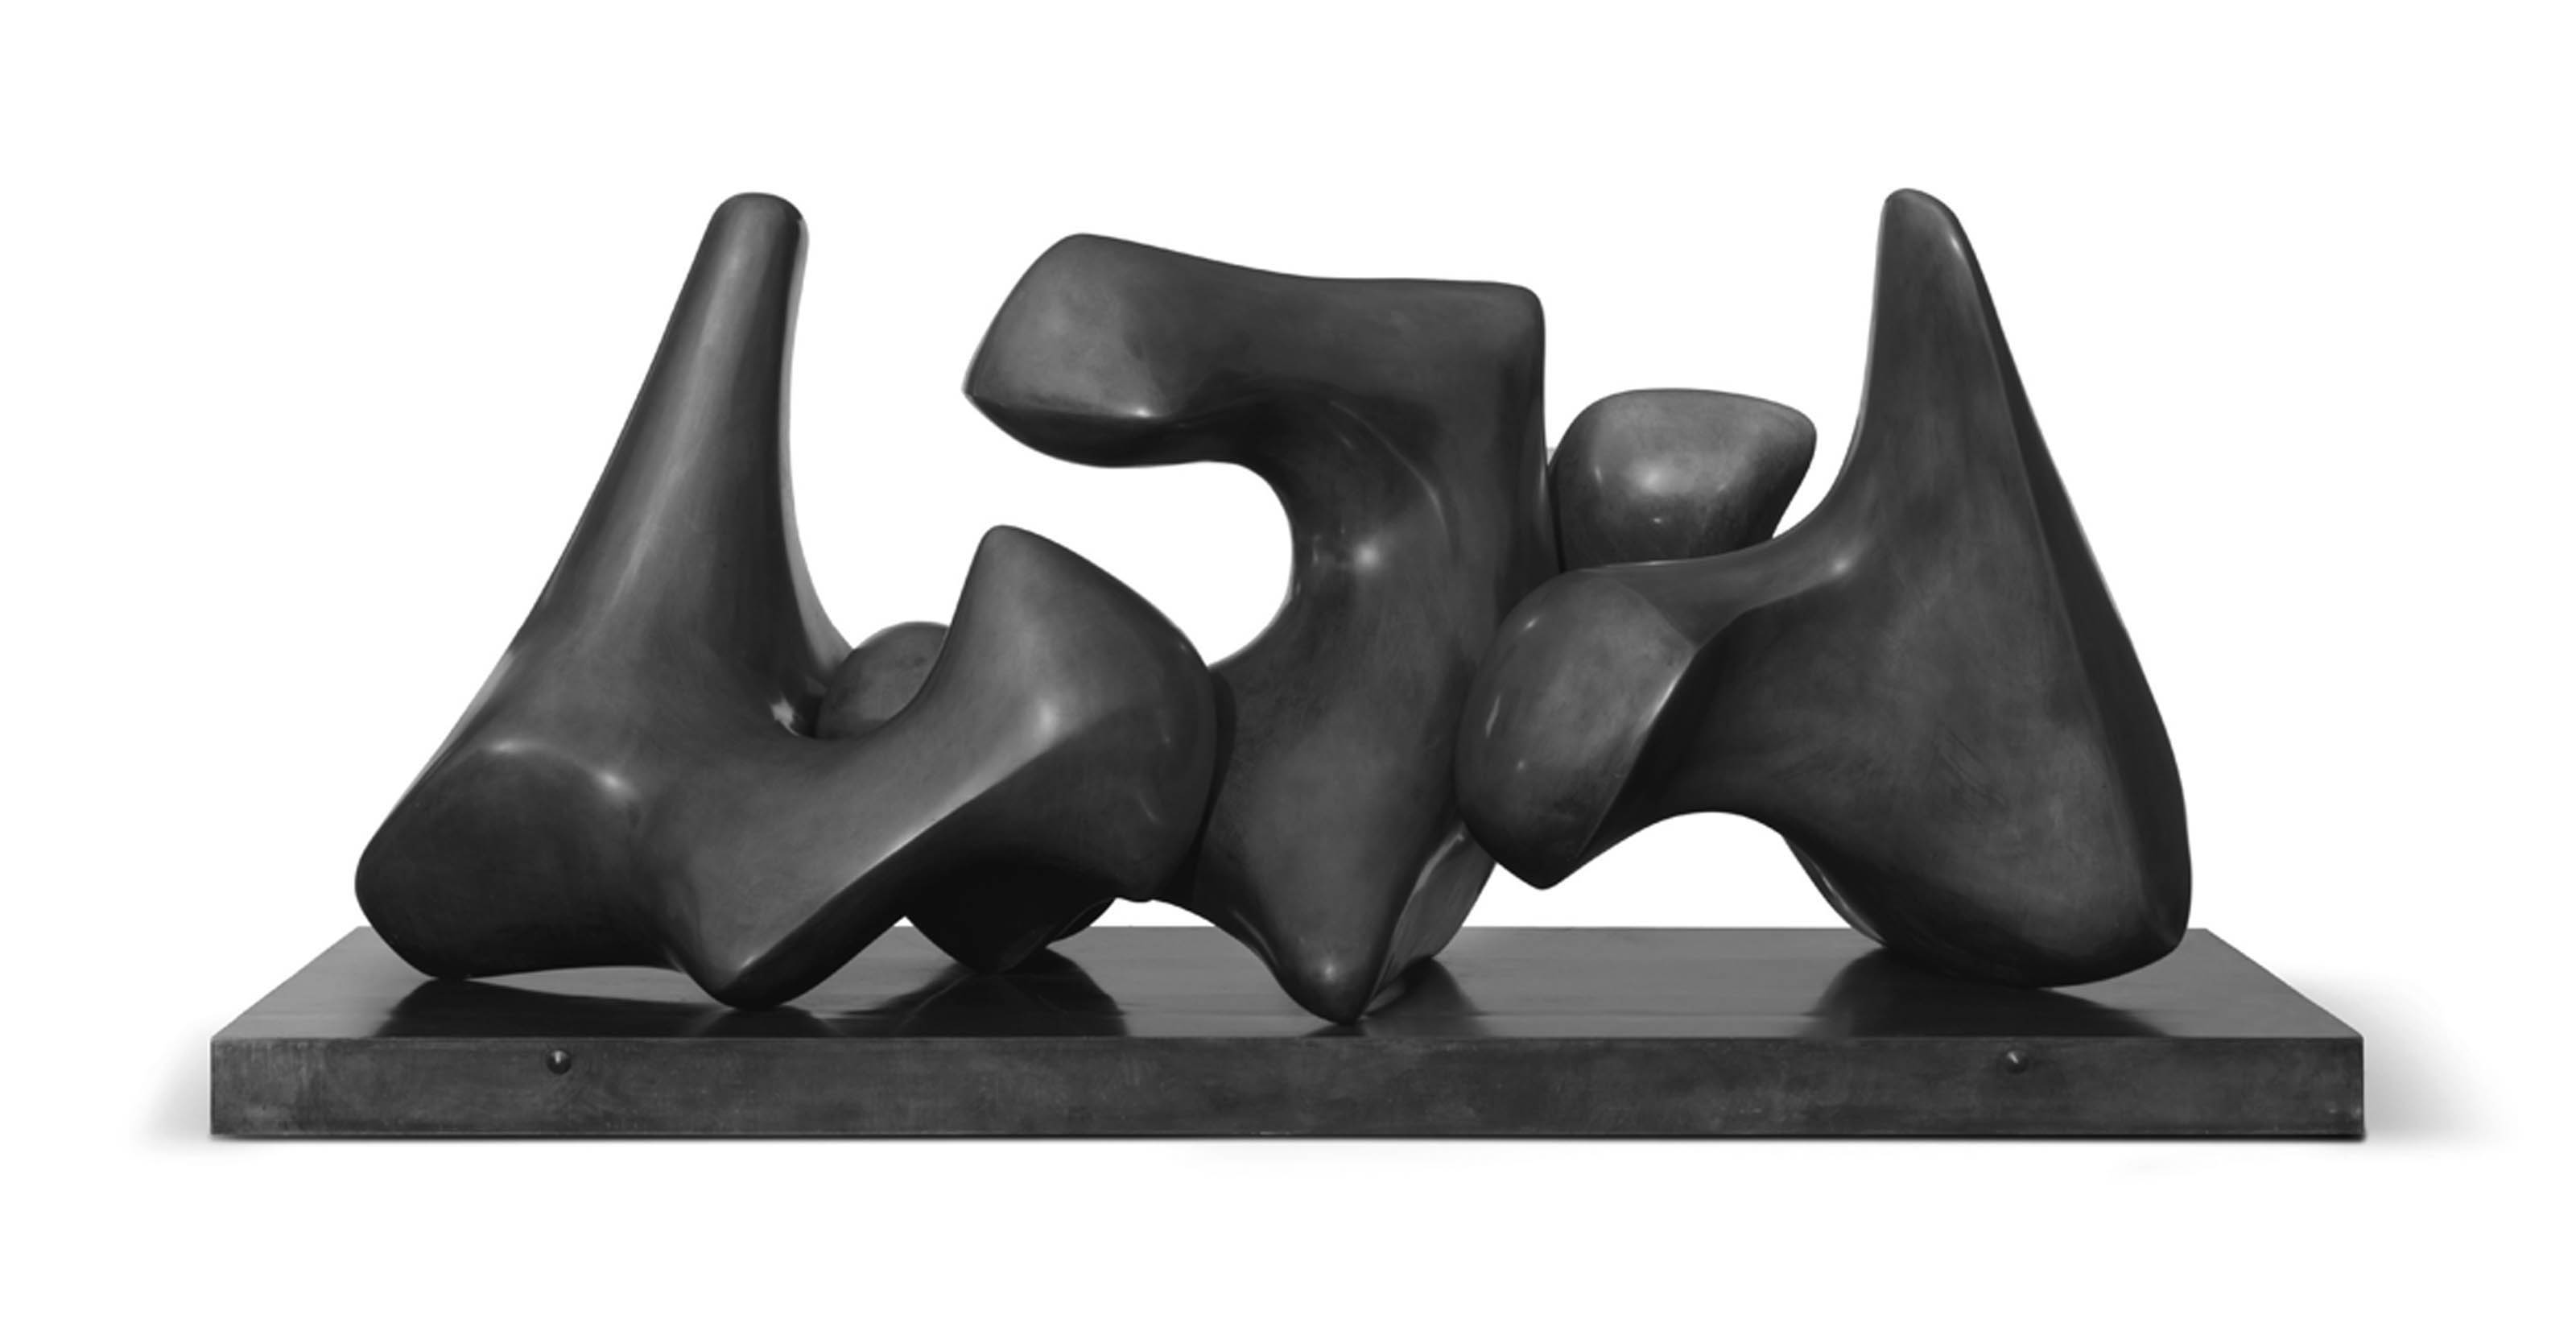 Working Model for Three Piece No. 3: Vertebrae